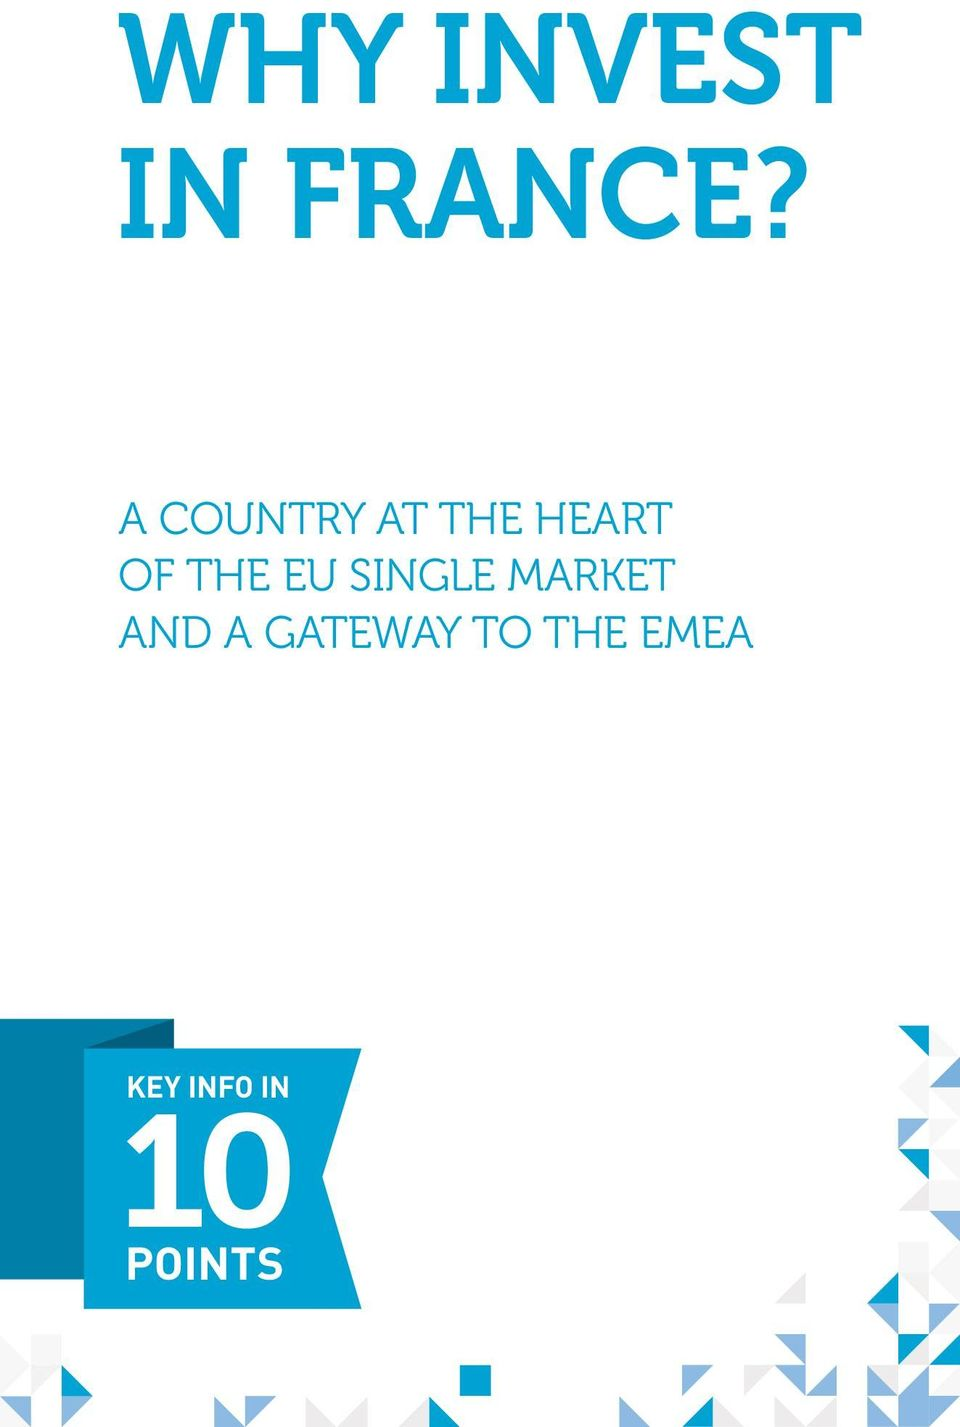 THE EU SINGLE MARKET AND A